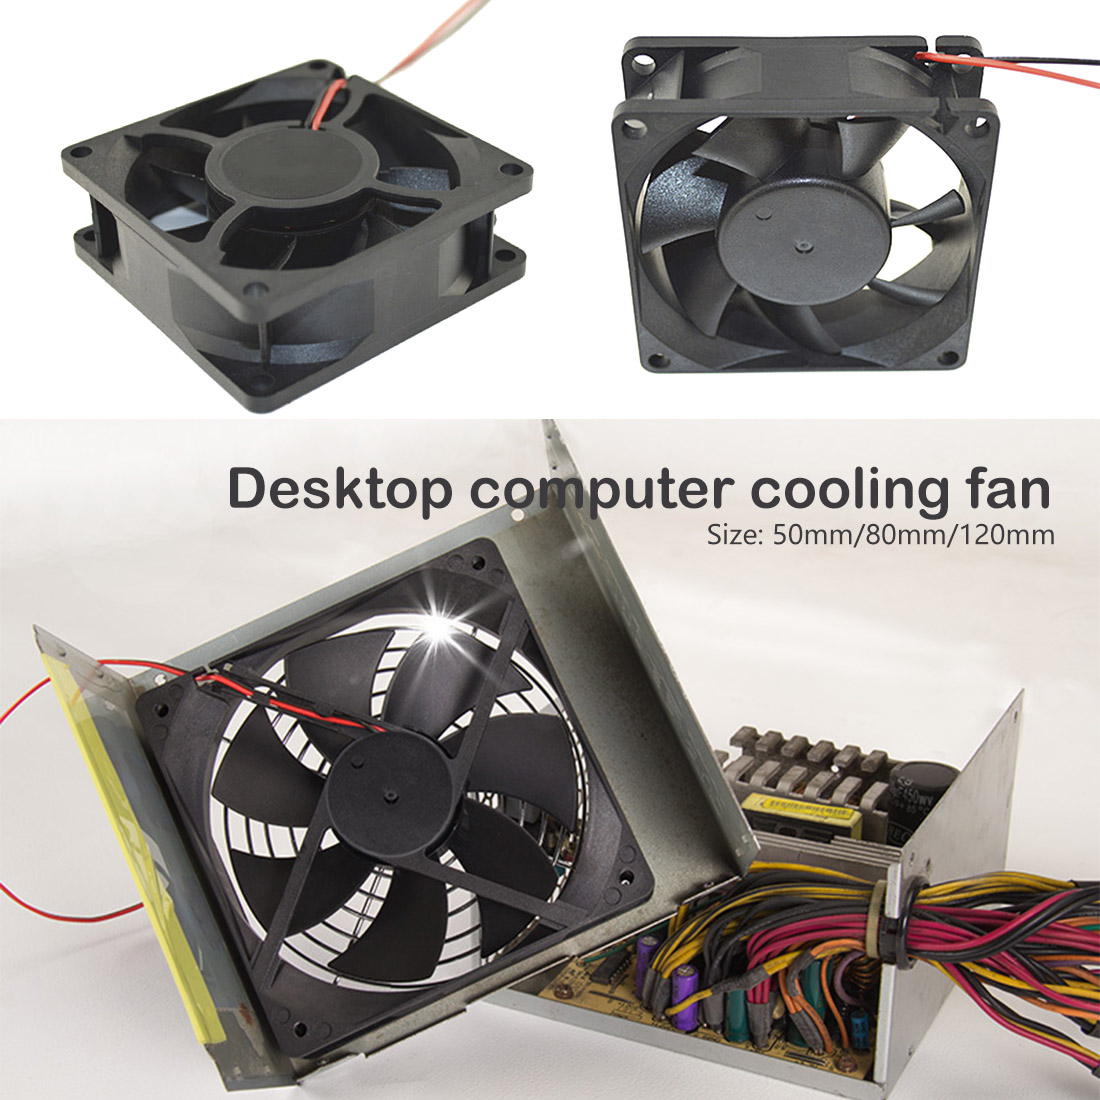 12V DC <font><b>fan</b></font> 50 80 <font><b>120</b></font> <font><b>mm</b></font> 2 Pin Connector Cooling <font><b>Fan</b></font> for Computer Case CPU Cooler Radiator Computer Accessories CPU Cooling <font><b>Fans</b></font> image